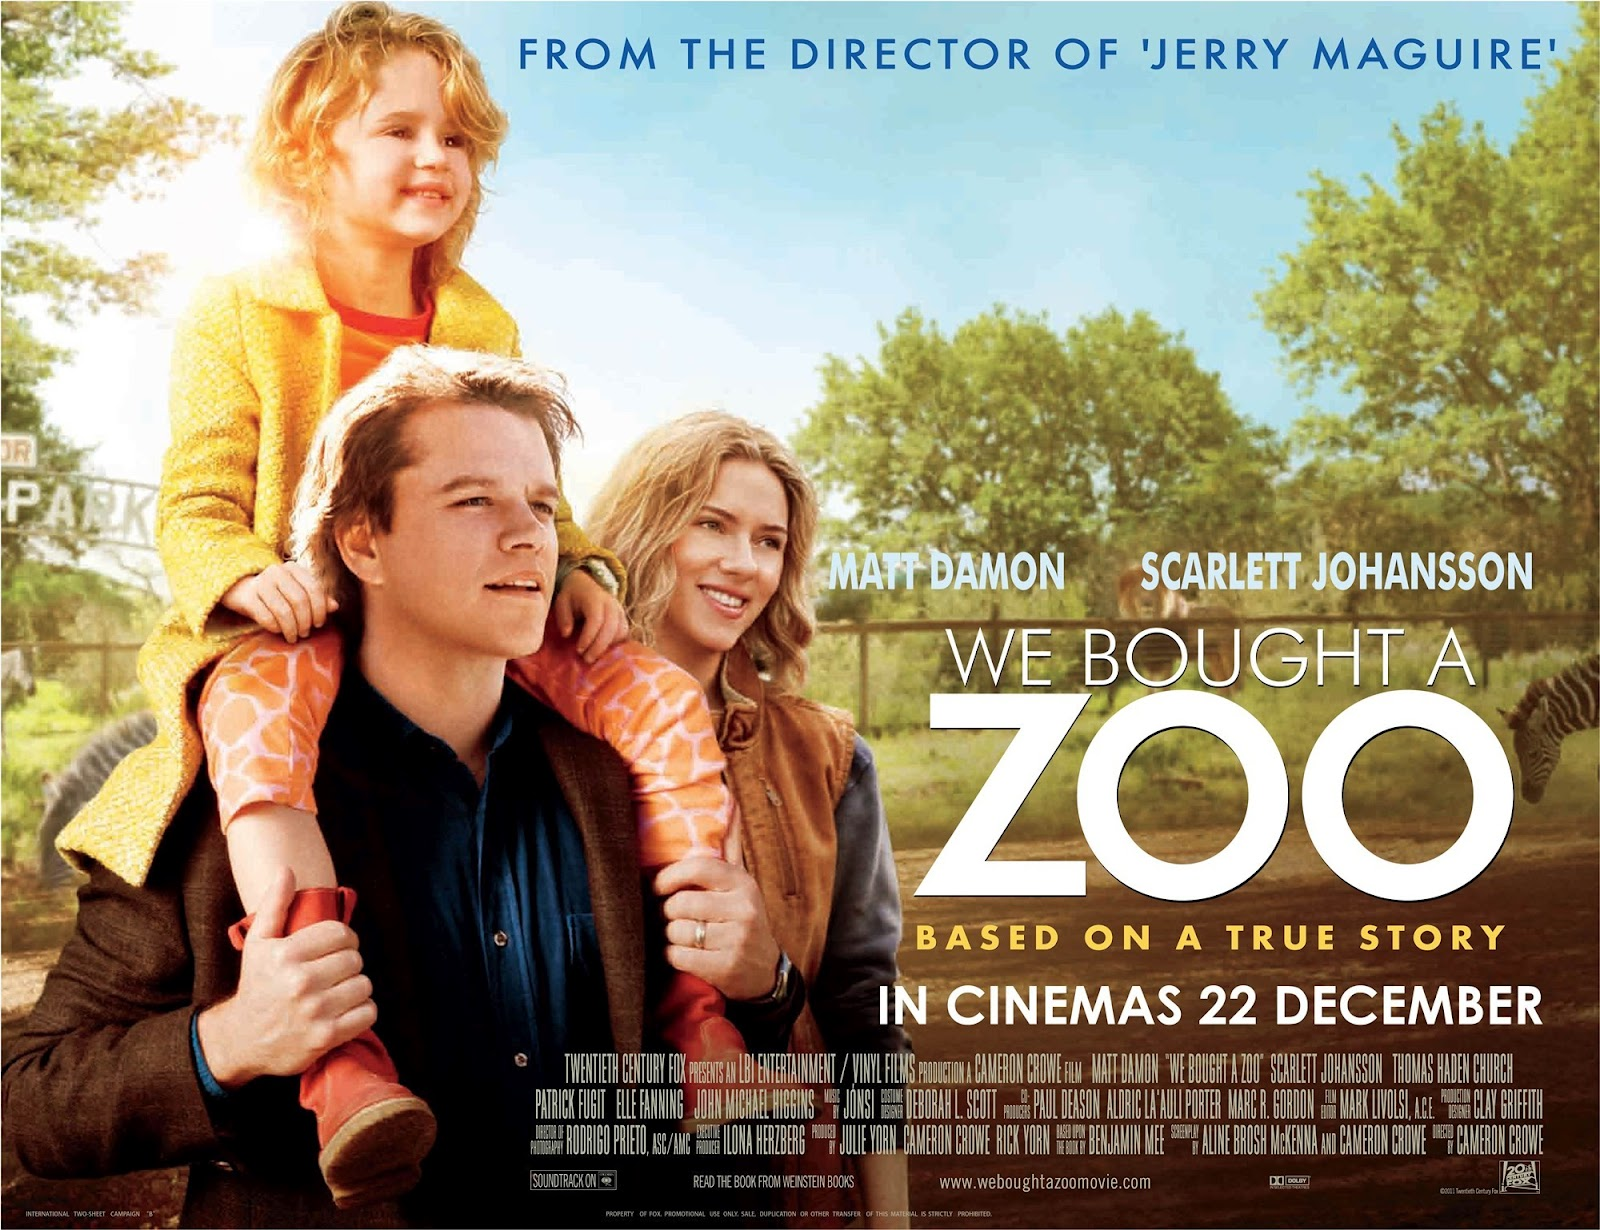 We Bought A Zoo Film Promotional Poster - Motherdistracted.co.uk